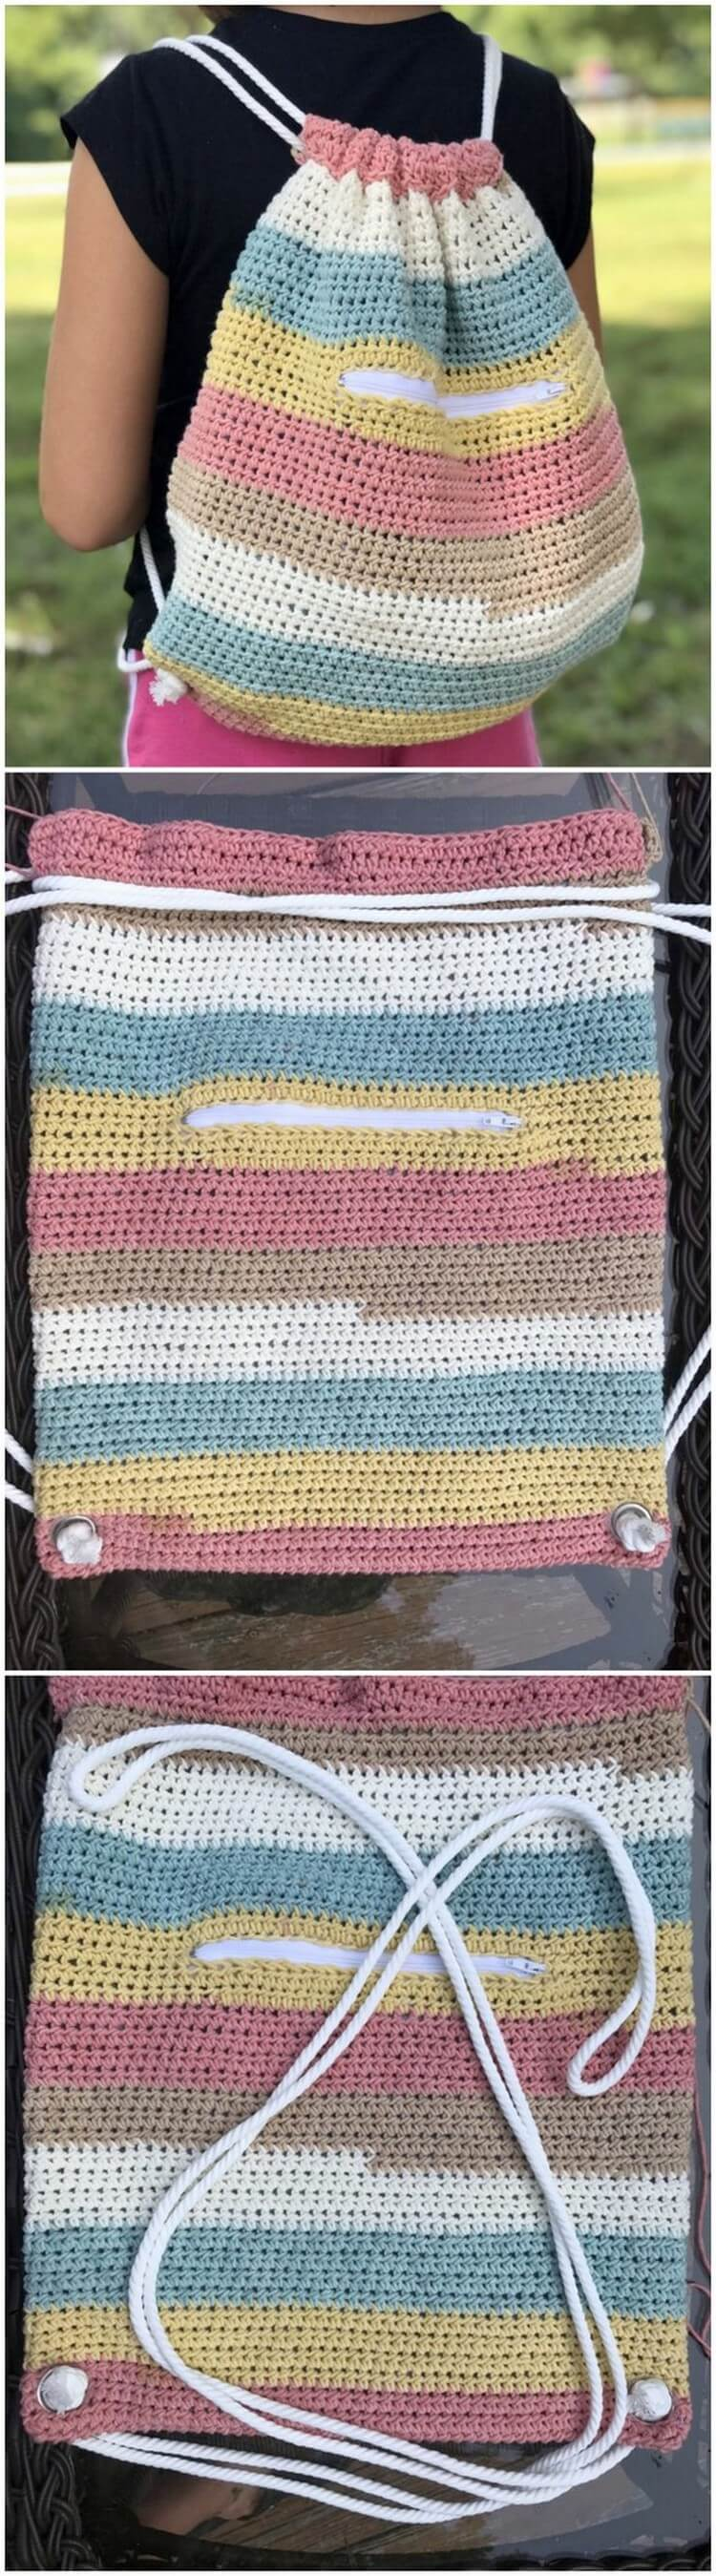 Crochet Backpack Pattern (12)